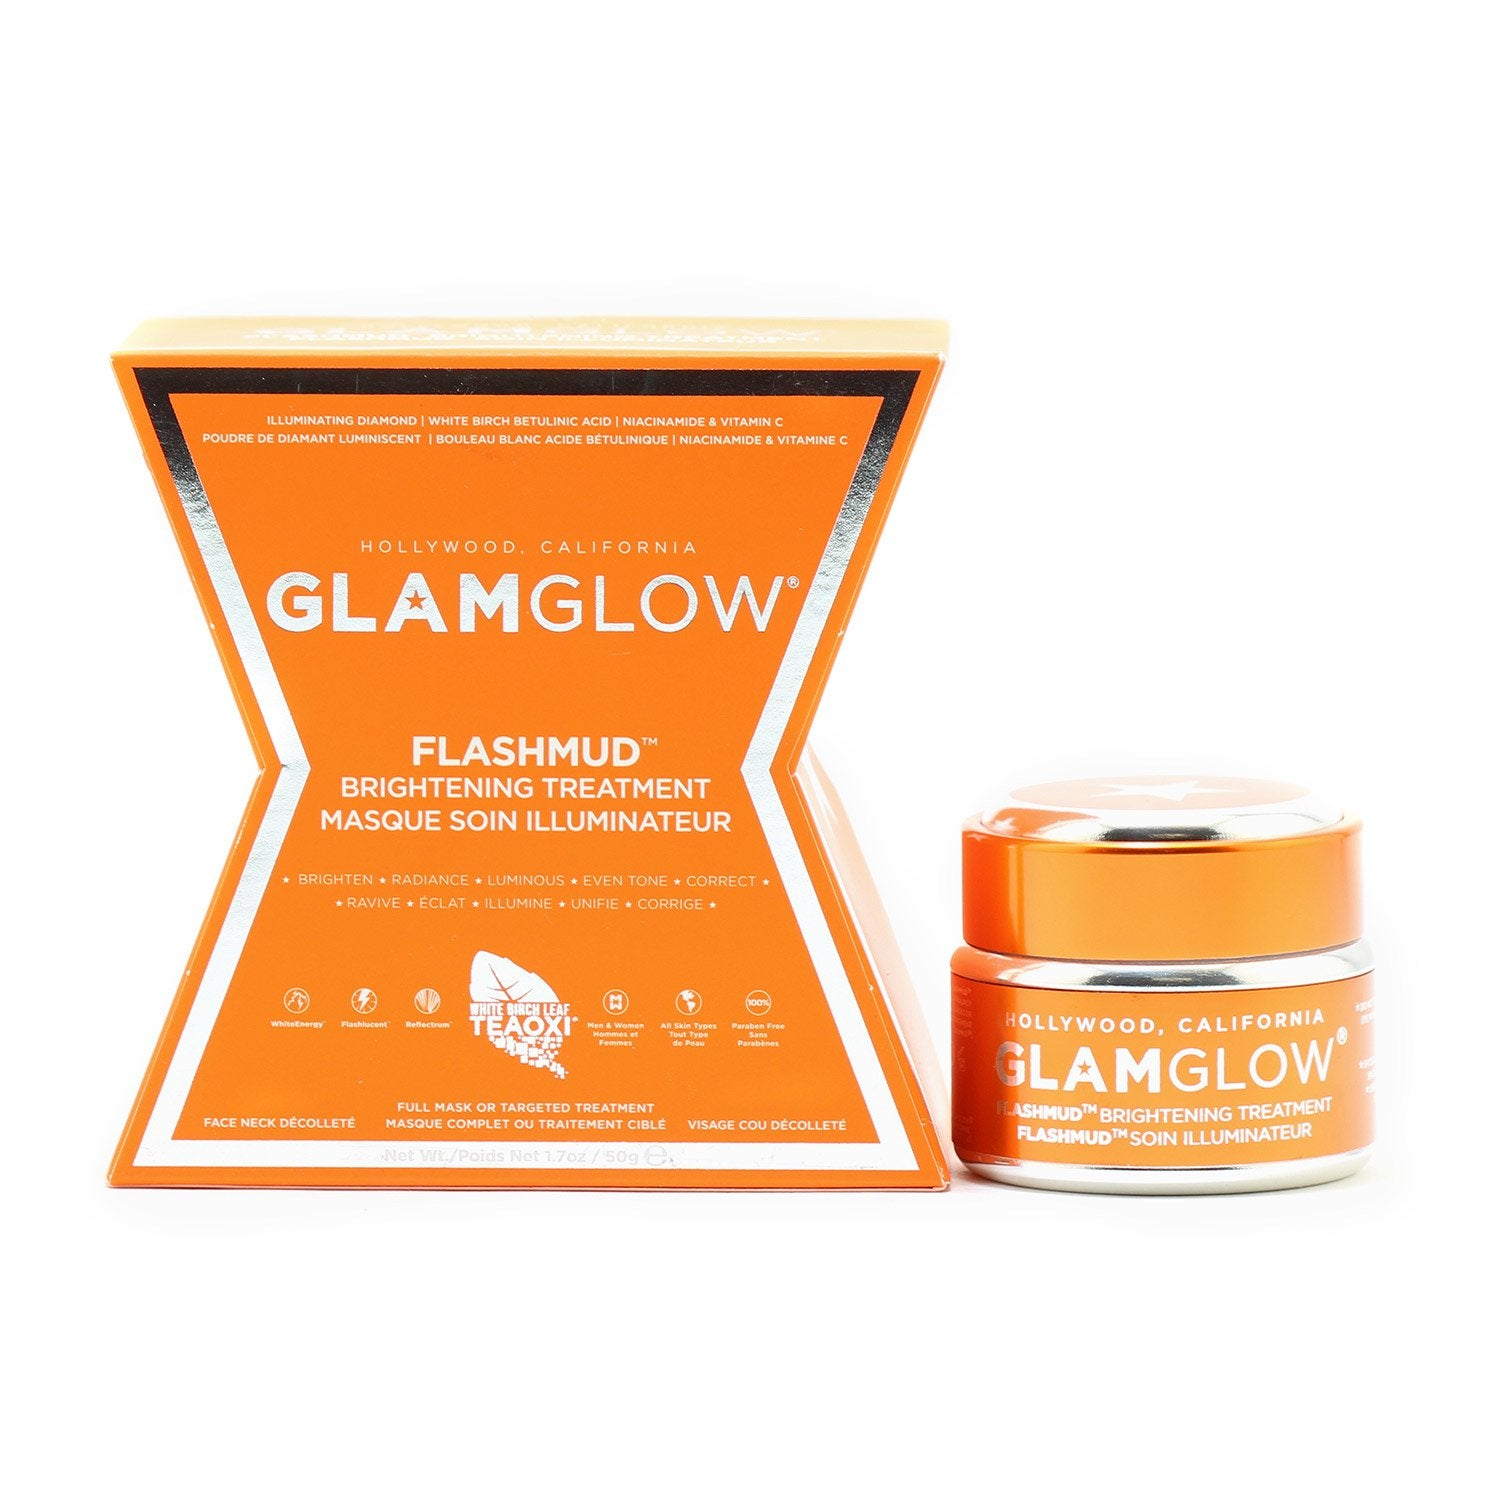 Skin Care - GLAMGLOW FLASHMUD BRIGHTENING TREATMENT